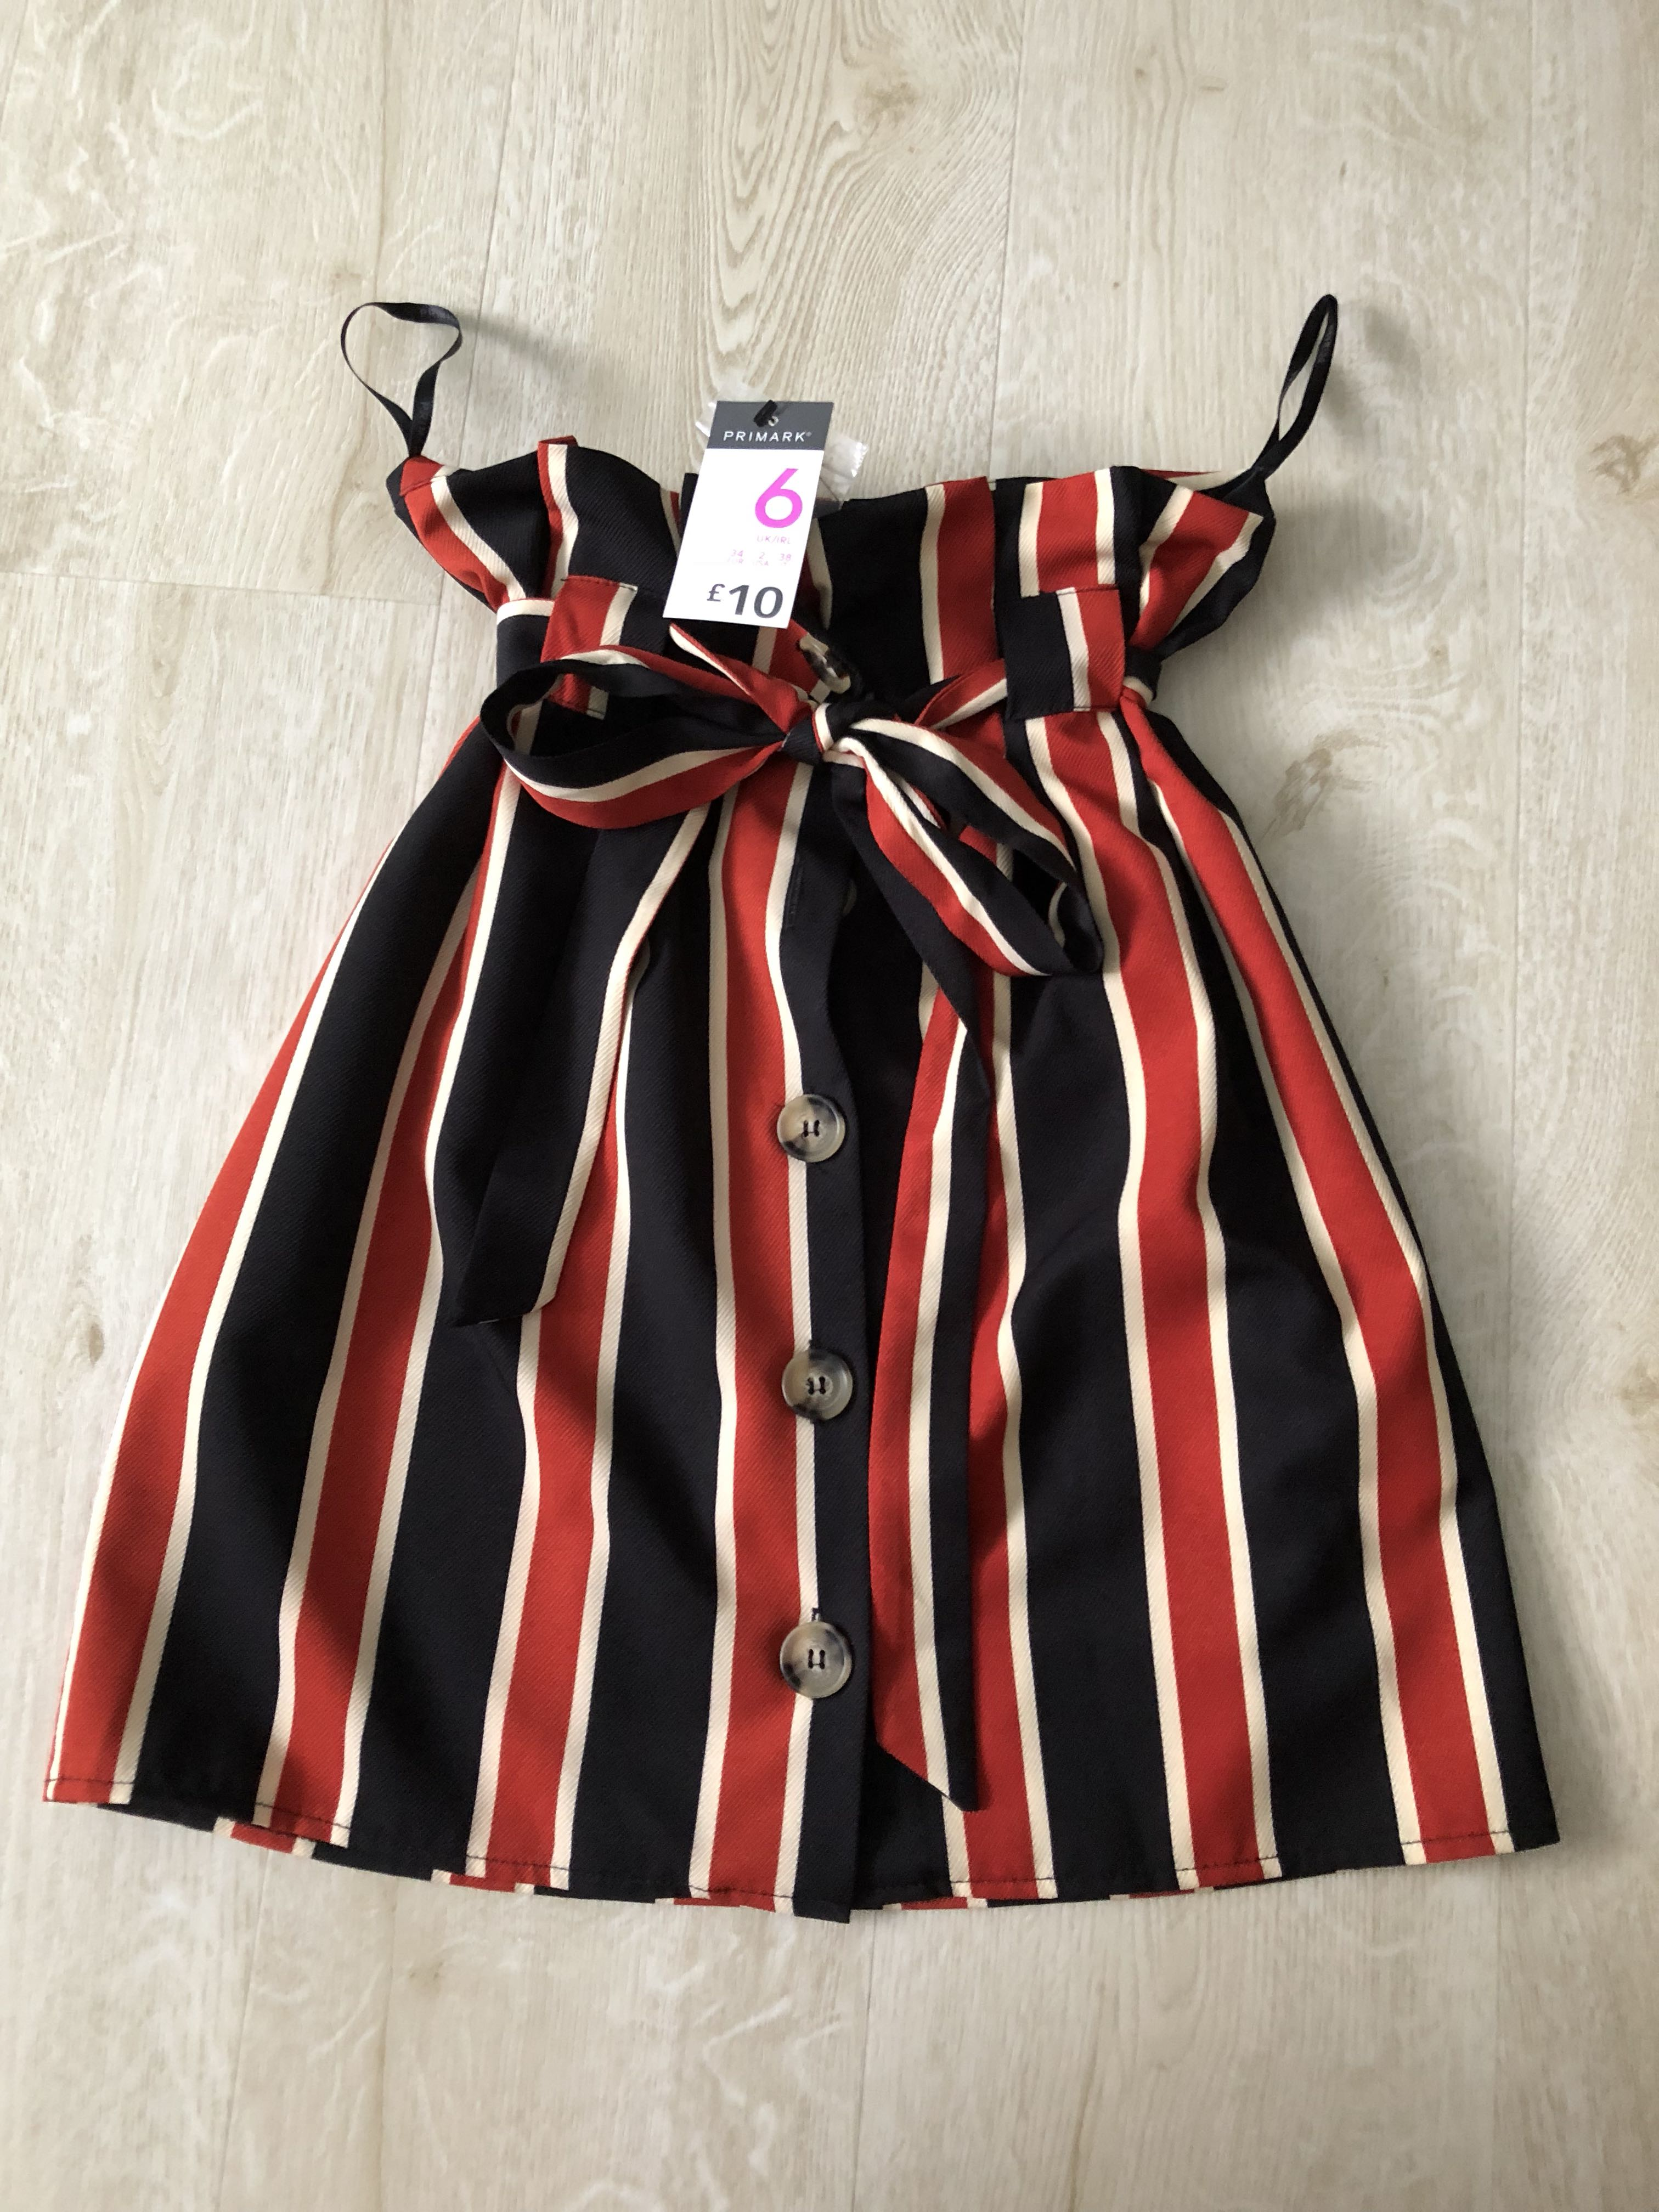 5fb38a80b5 Primark Paperbag Skirt, Women's Fashion, Clothes, Dresses & Skirts on  Carousell